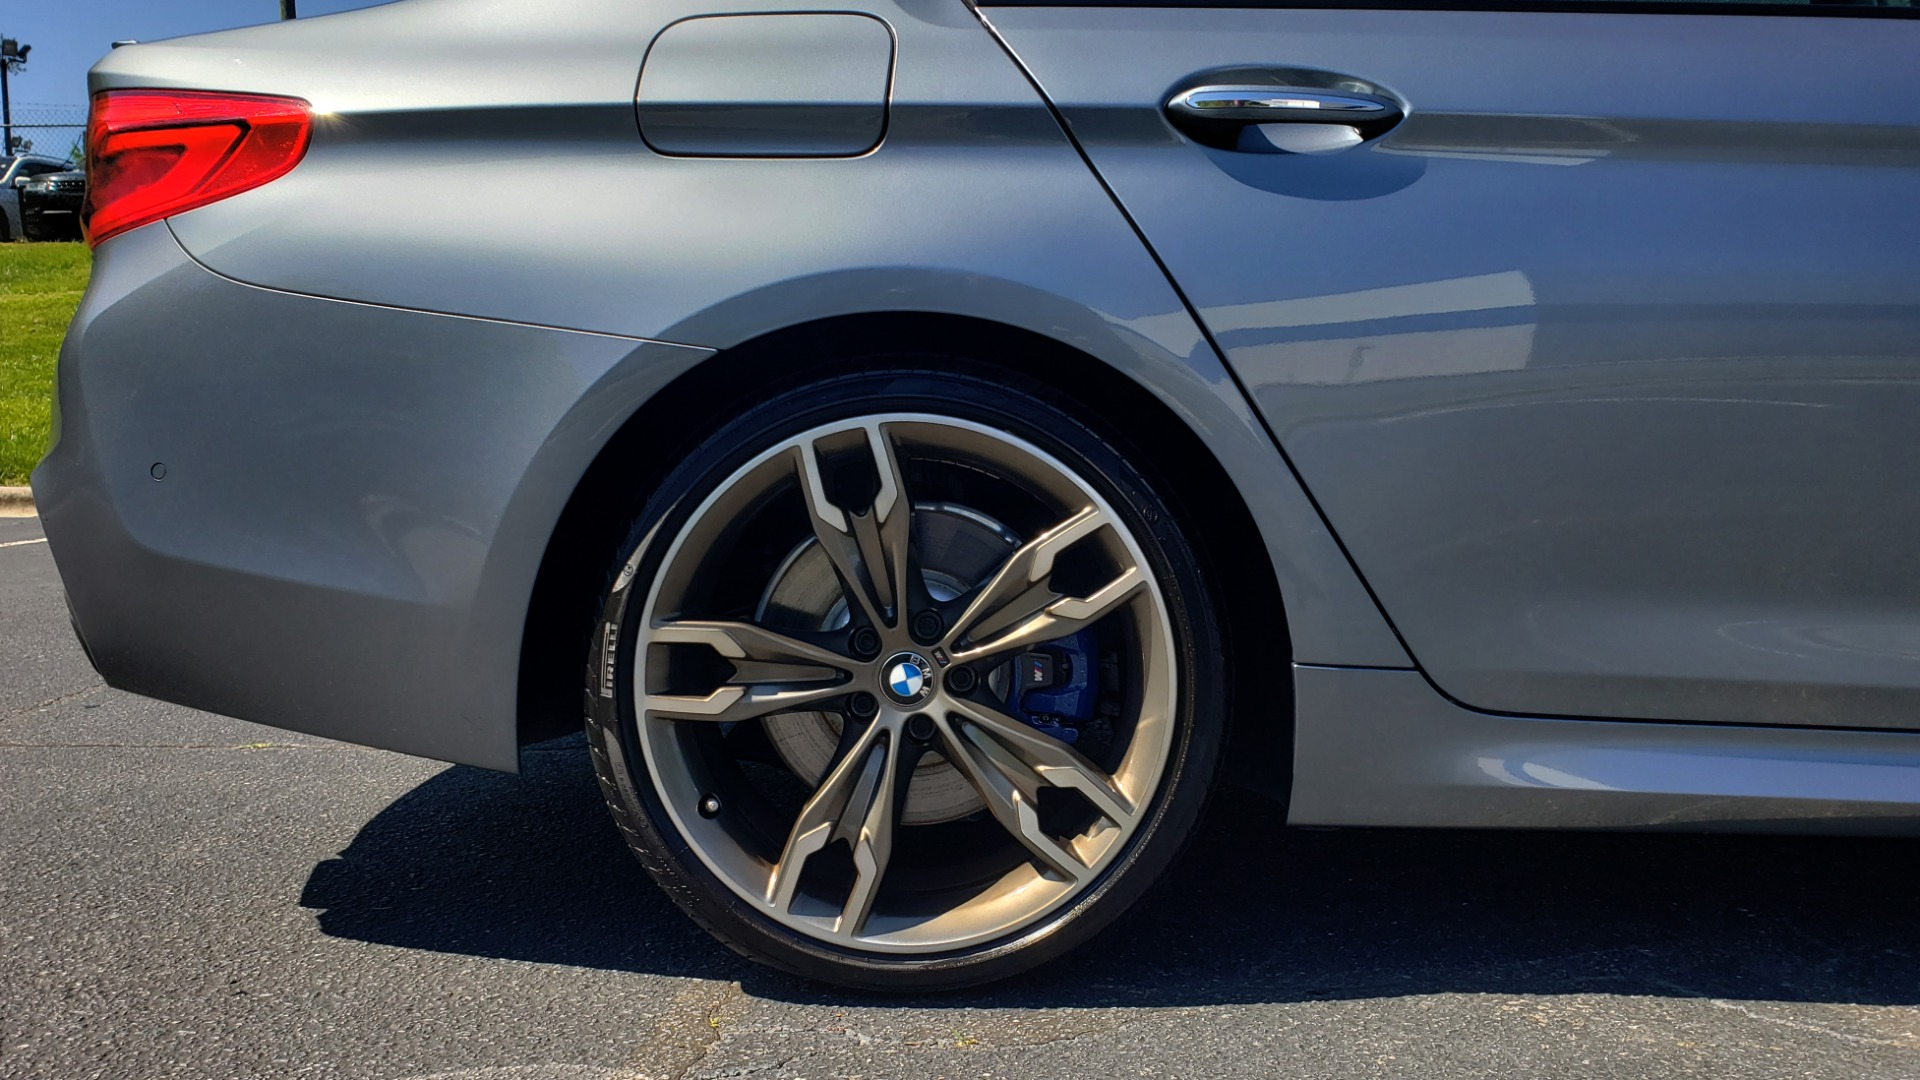 Used 2018 BMW 5 SERIES M550I XDRIVE / EXEC PKG / LUX / DRVR ASST / CLD WTHR / ACTIVE DR for sale Sold at Formula Imports in Charlotte NC 28227 88